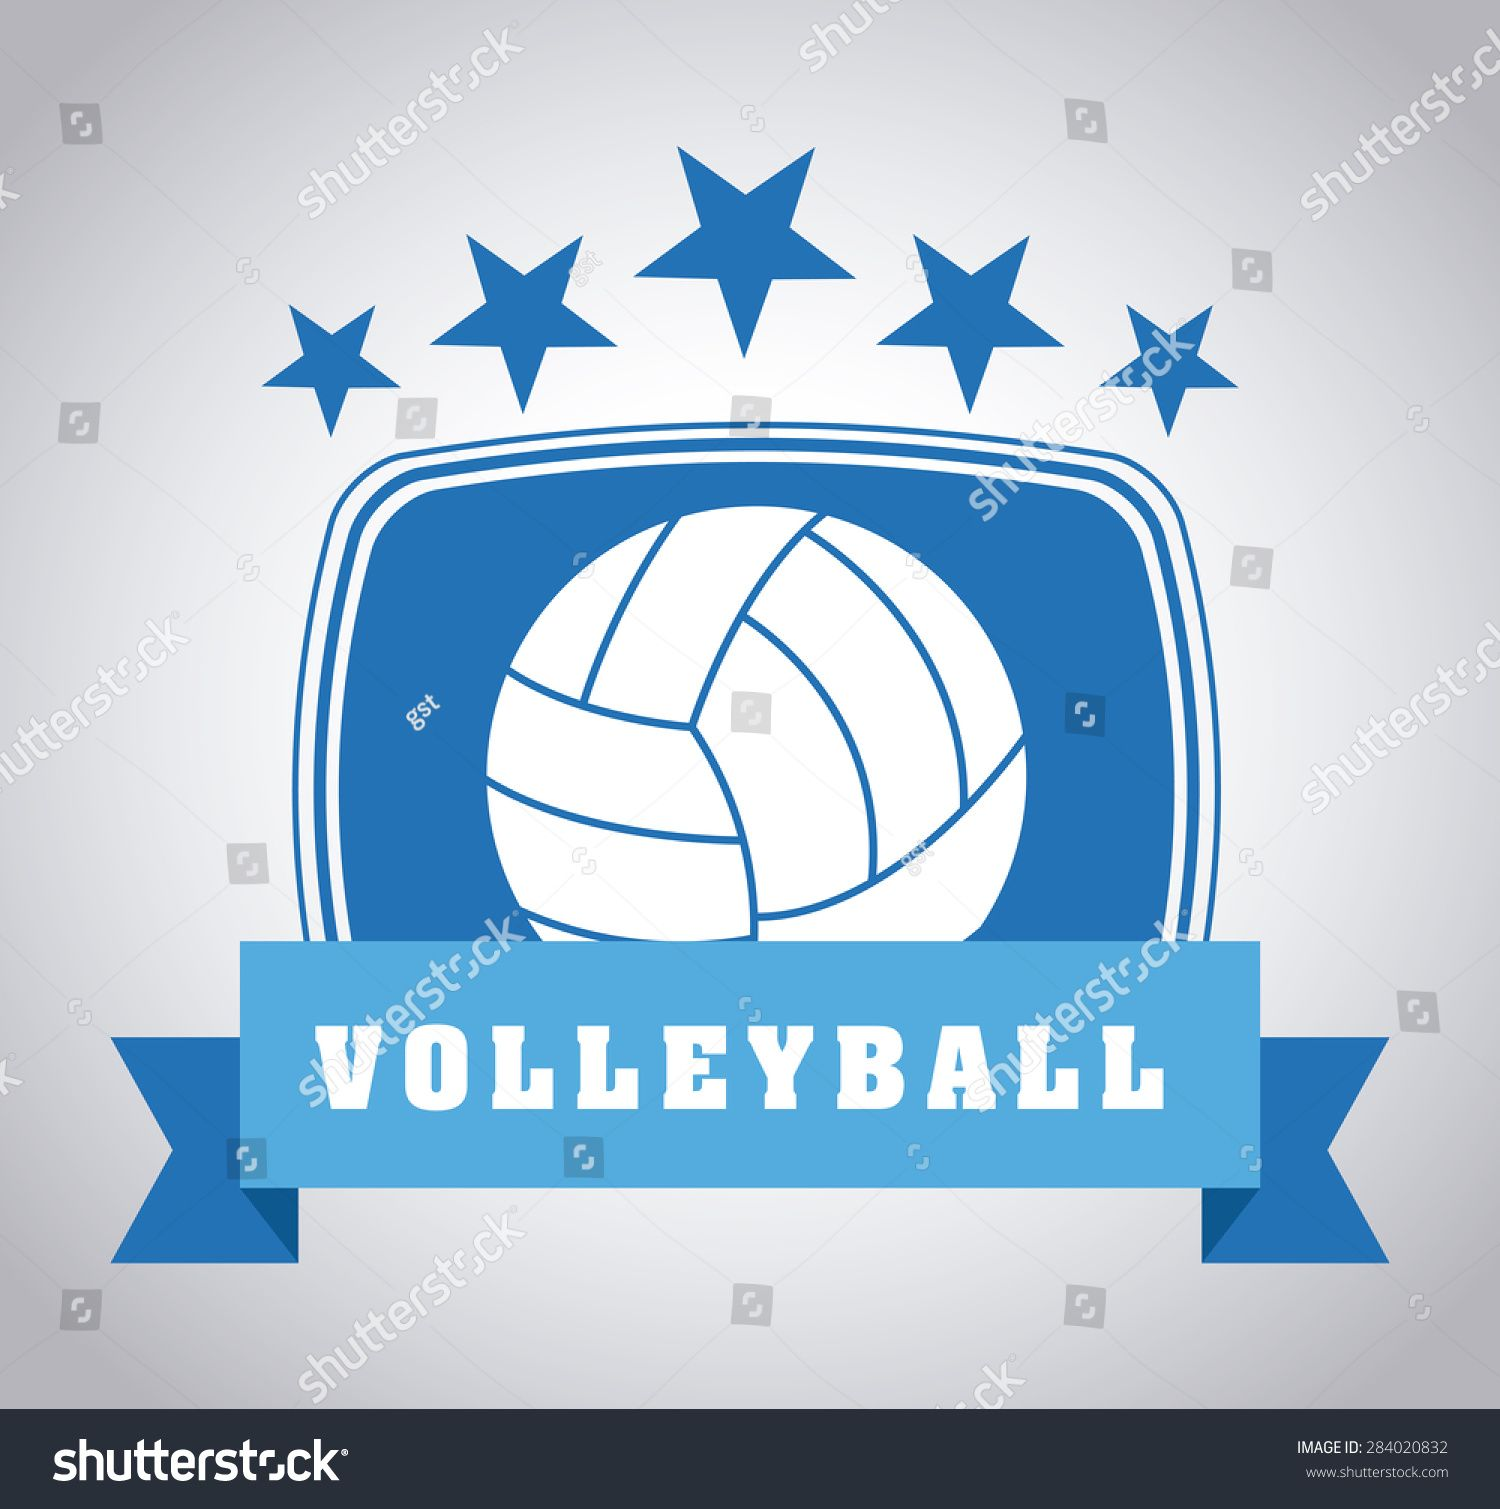 Volleyball Sport Design Vector Illustration Eps10 Graphic Ad Ad Design Sport Volleyball Vector In 2020 Photo Editing Stock Photos Sports Basketball